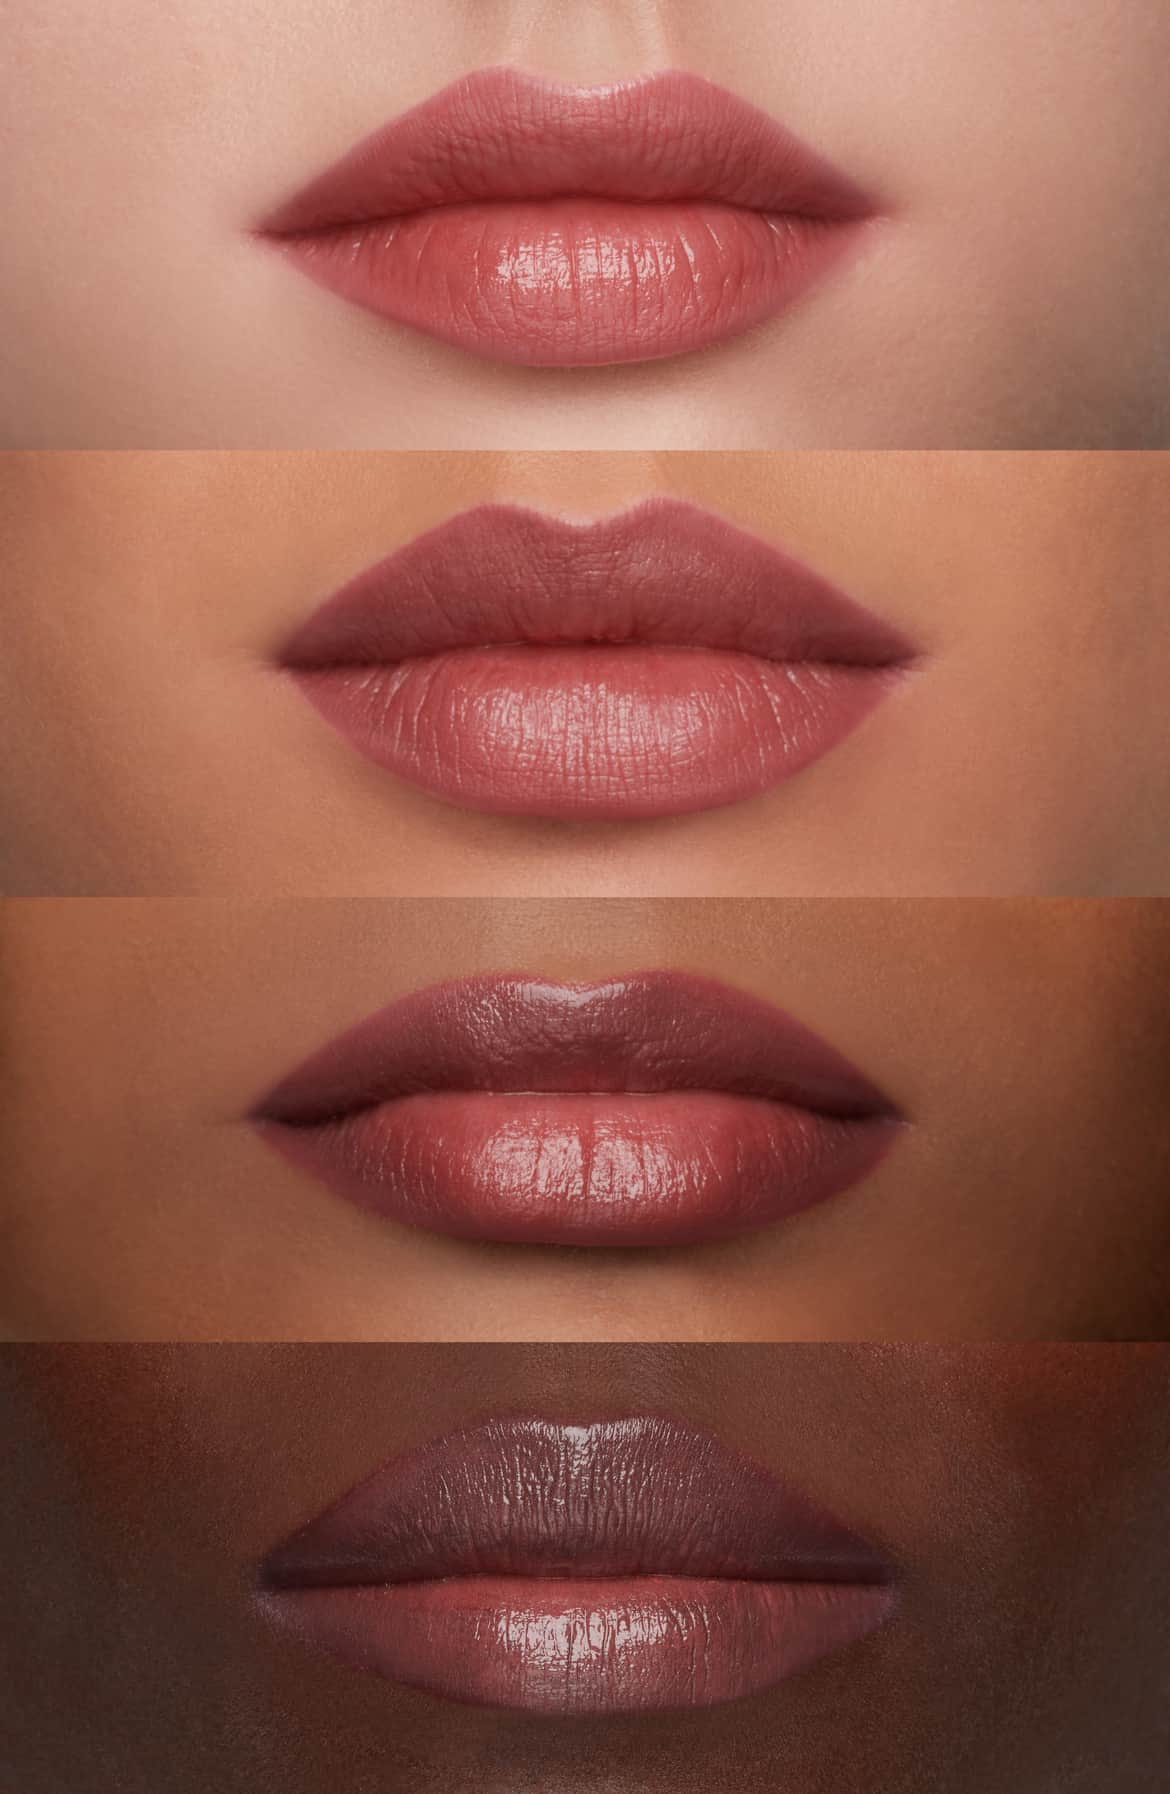 c604b34f 36c9 4d43 97ad bc73bef5c12b - How to Find a Lipstick to Look Amazing on You